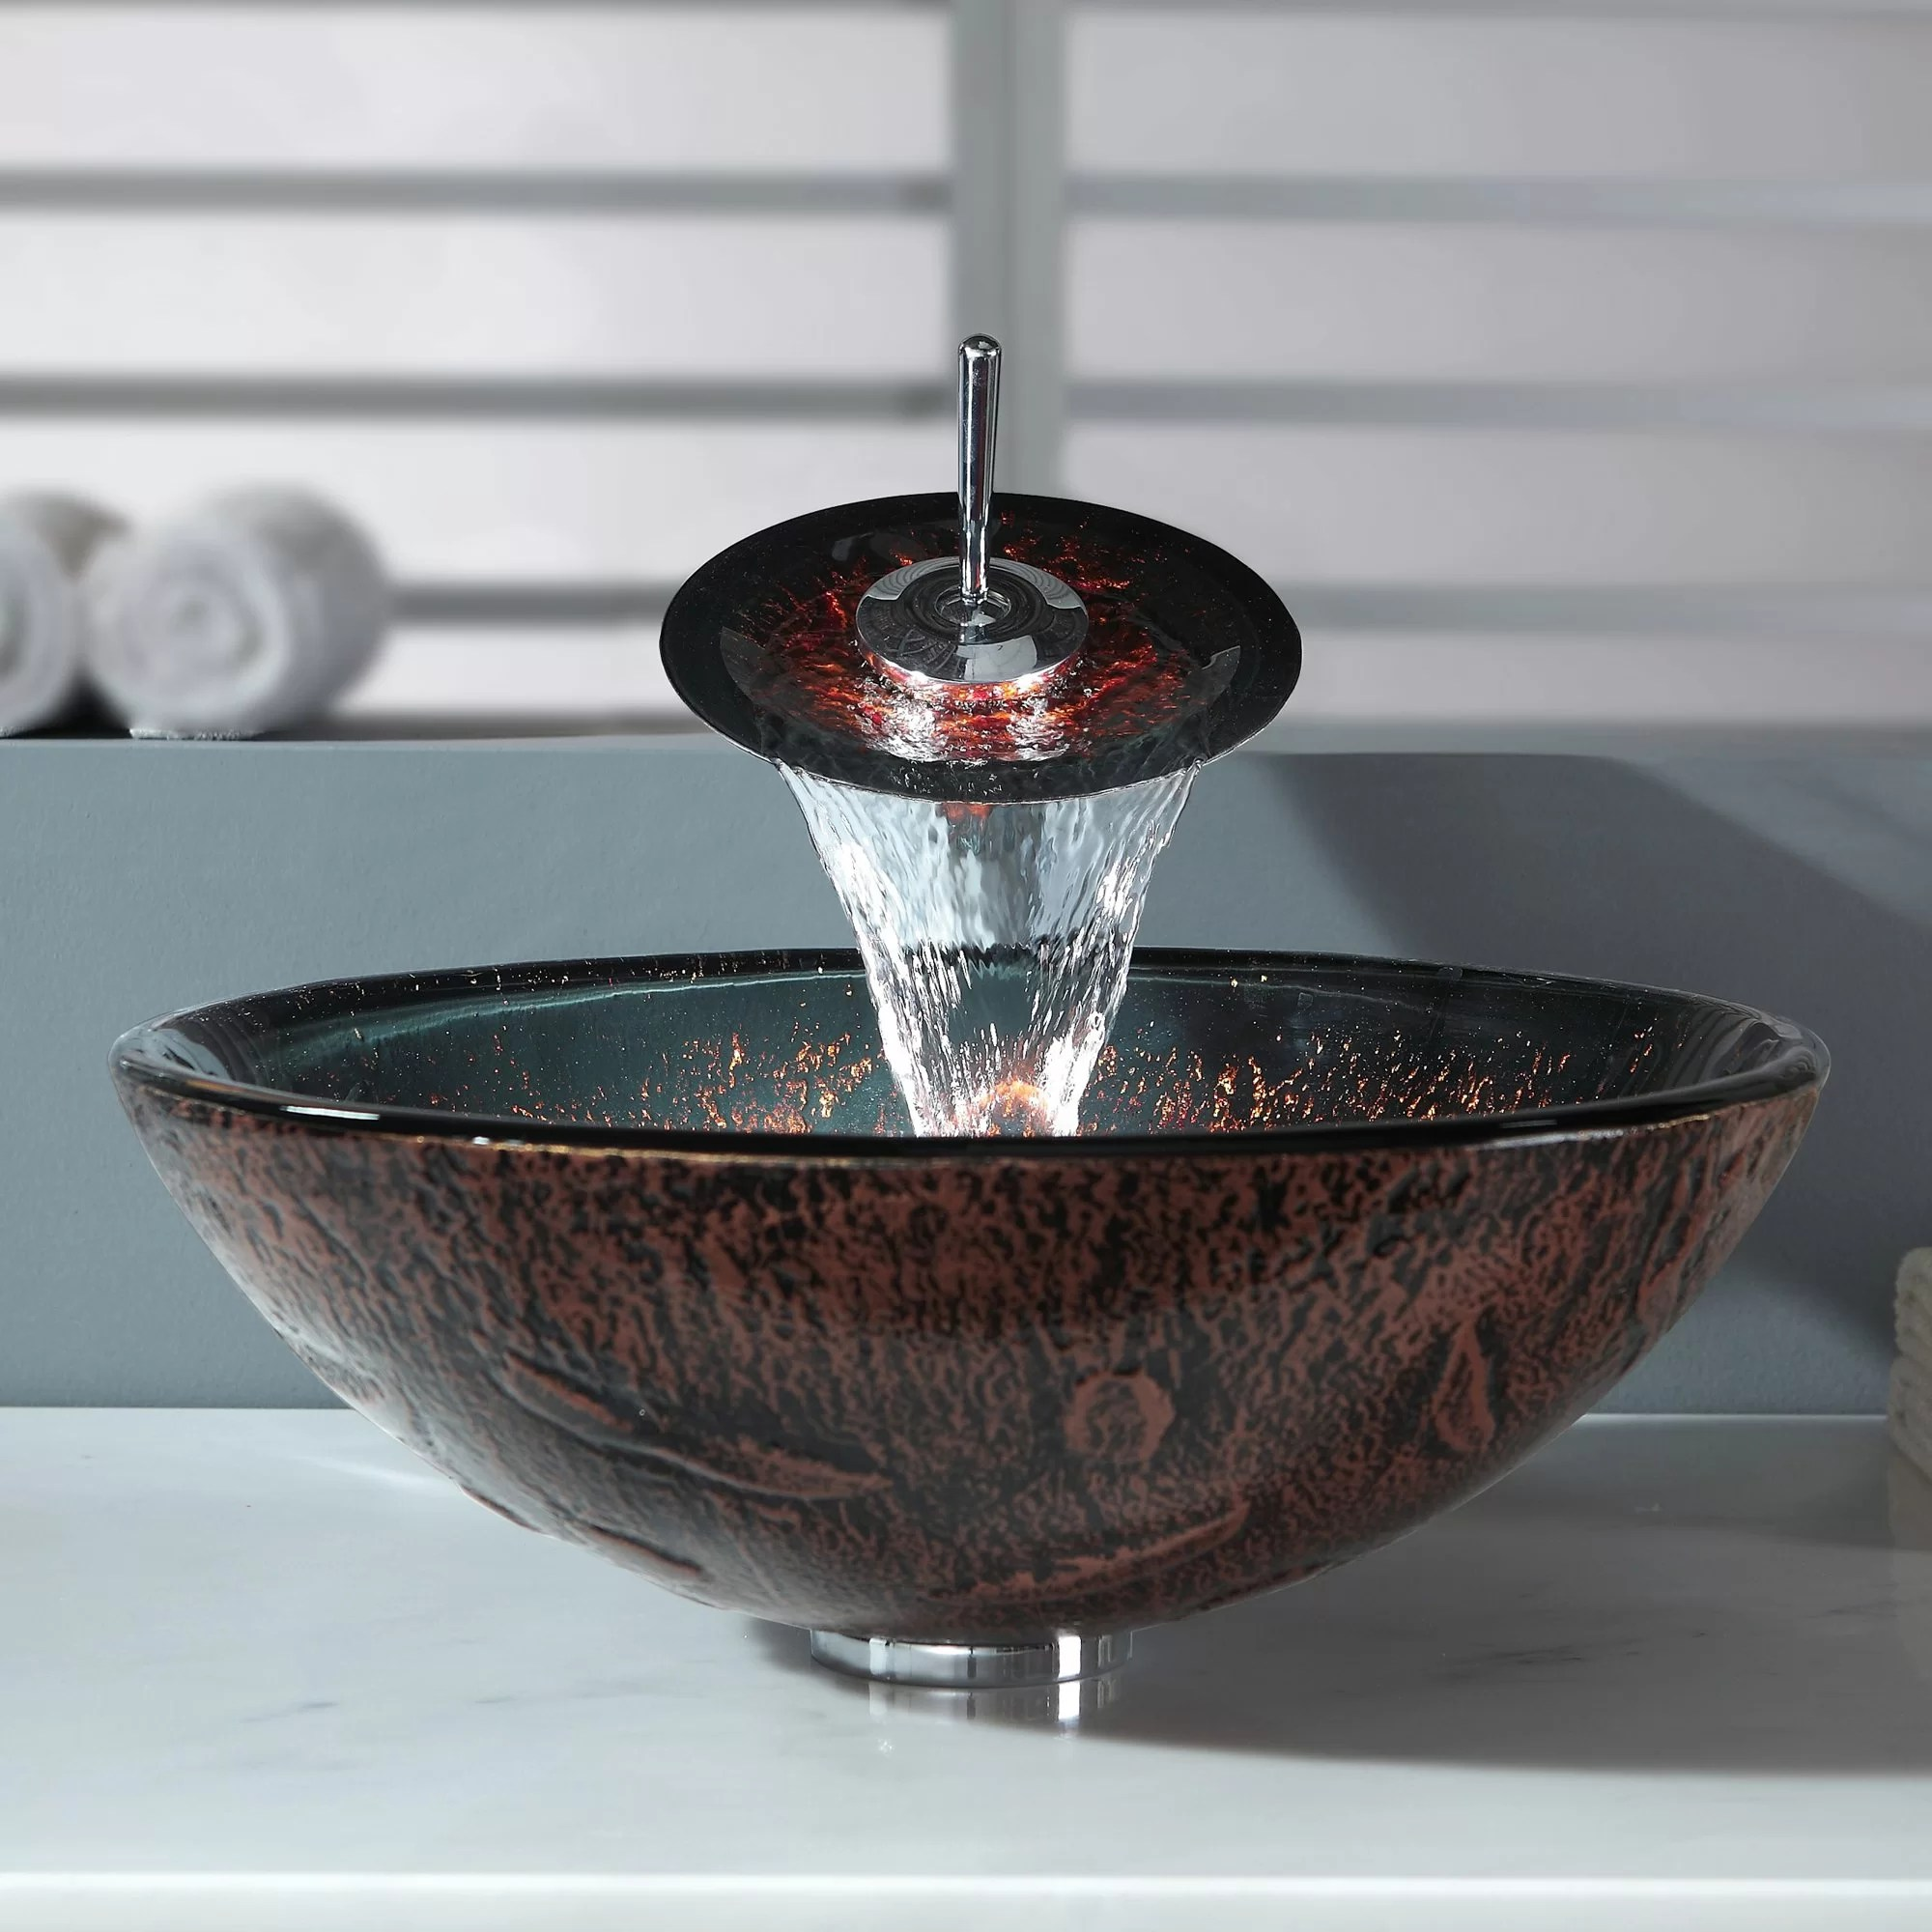 Waterfall Faucet For Vessel Sink Kraus Lava Glass Vessel Sink And Waterfall Faucet